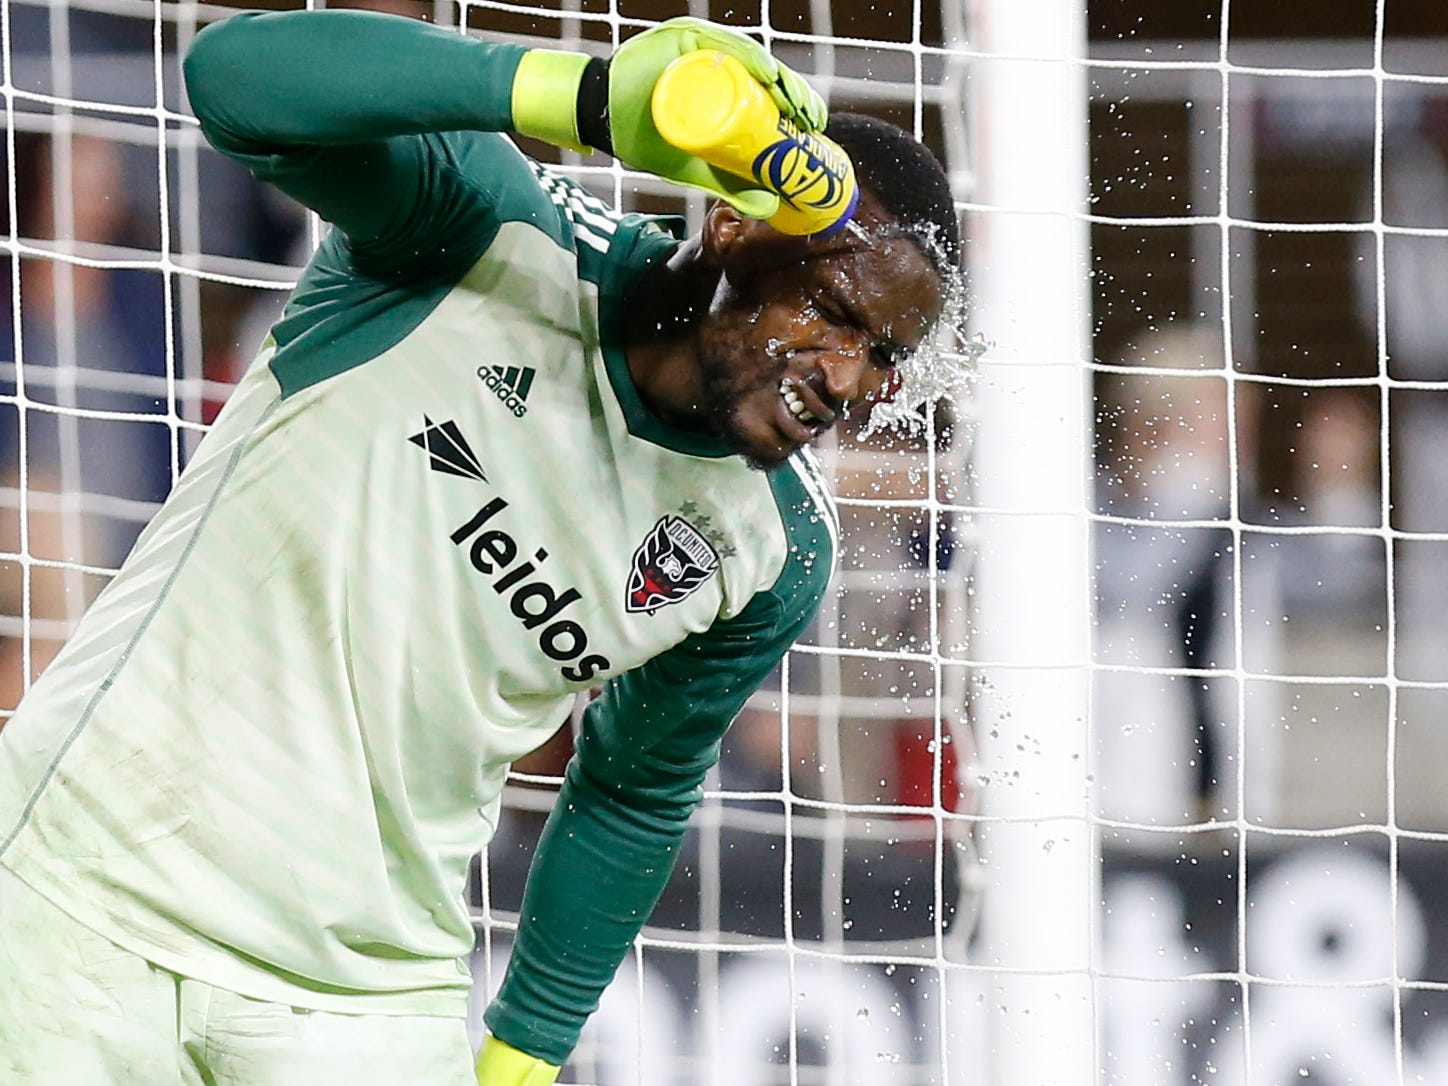 D.C. United goalkeeper Bill Hamid squirts his face with water during the knockoff playoff game against Columbus Crew SC at Audi Field.